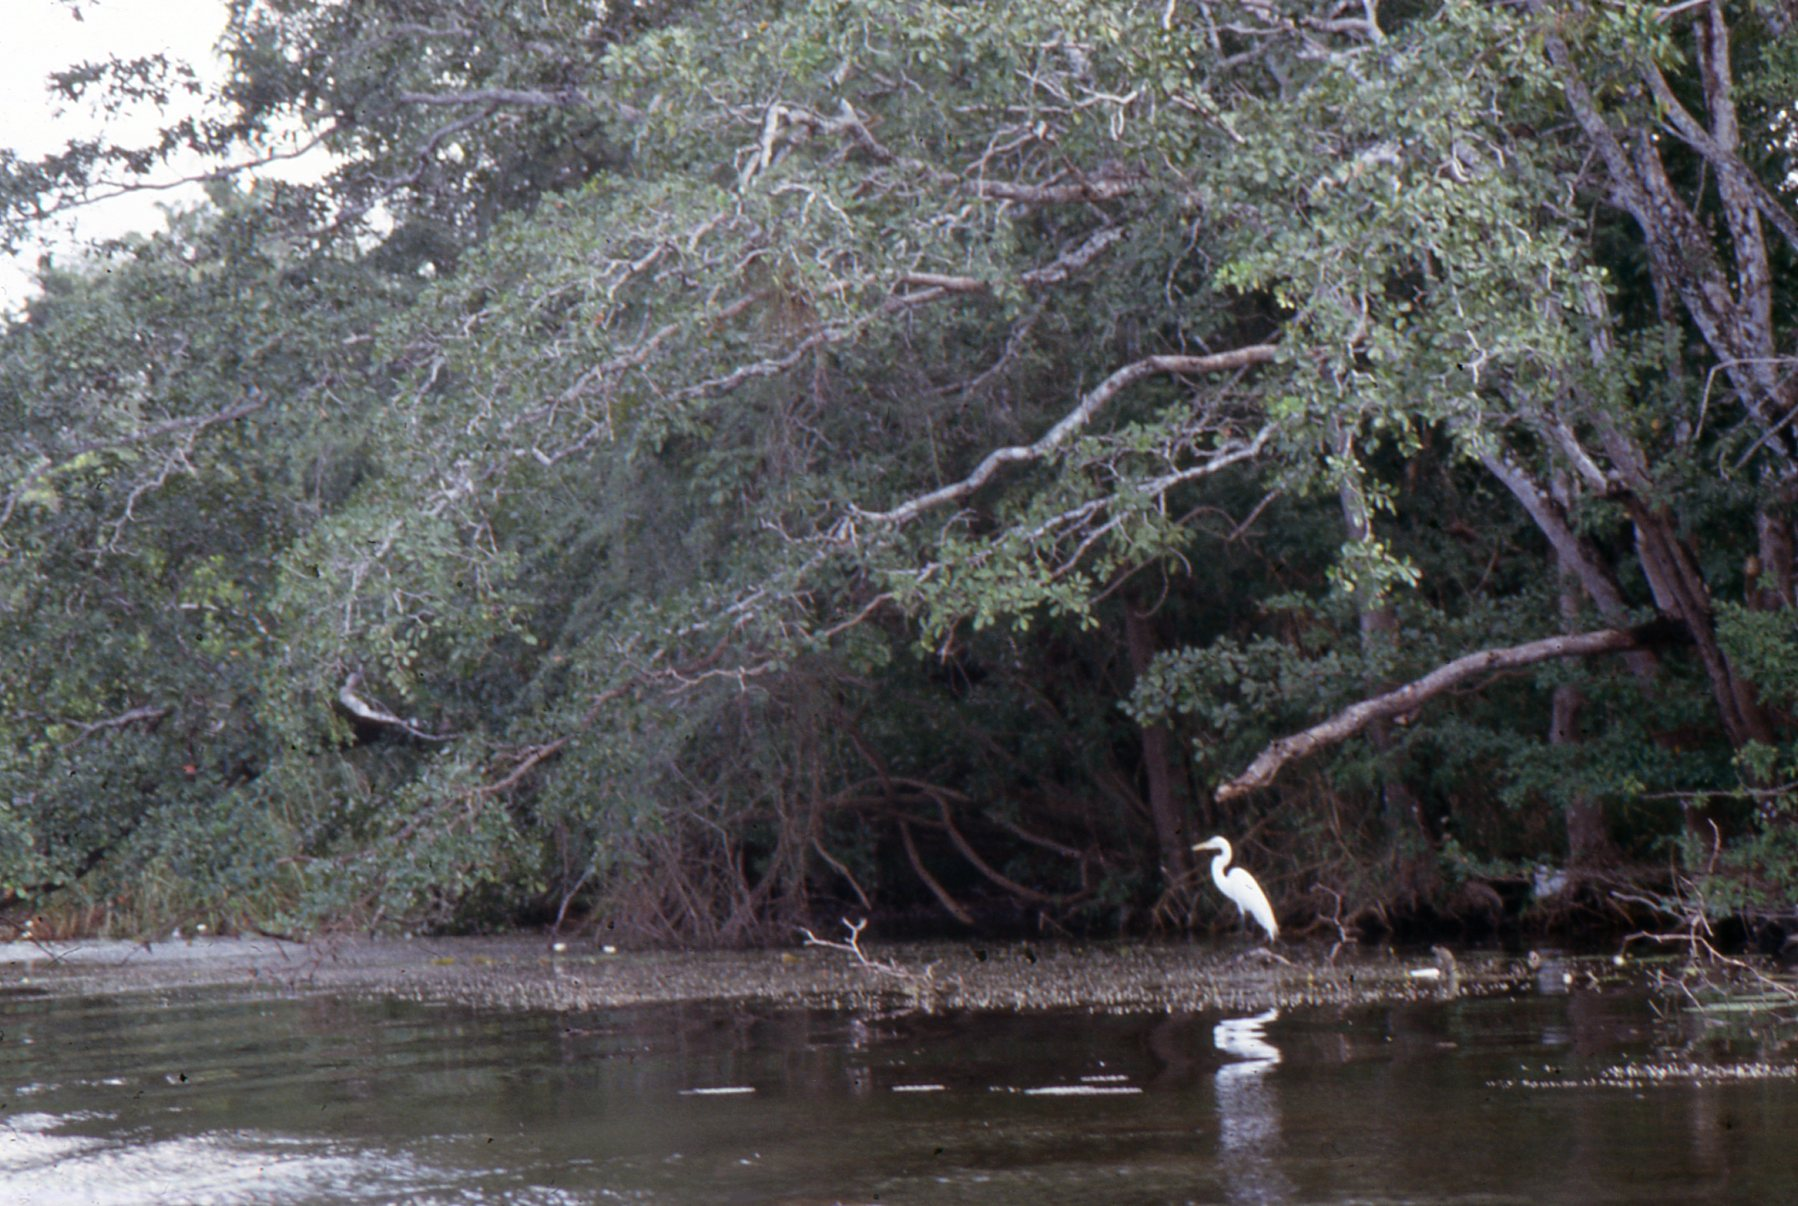 An elegant egret surveys the lonely stretches of the overgrown New River.